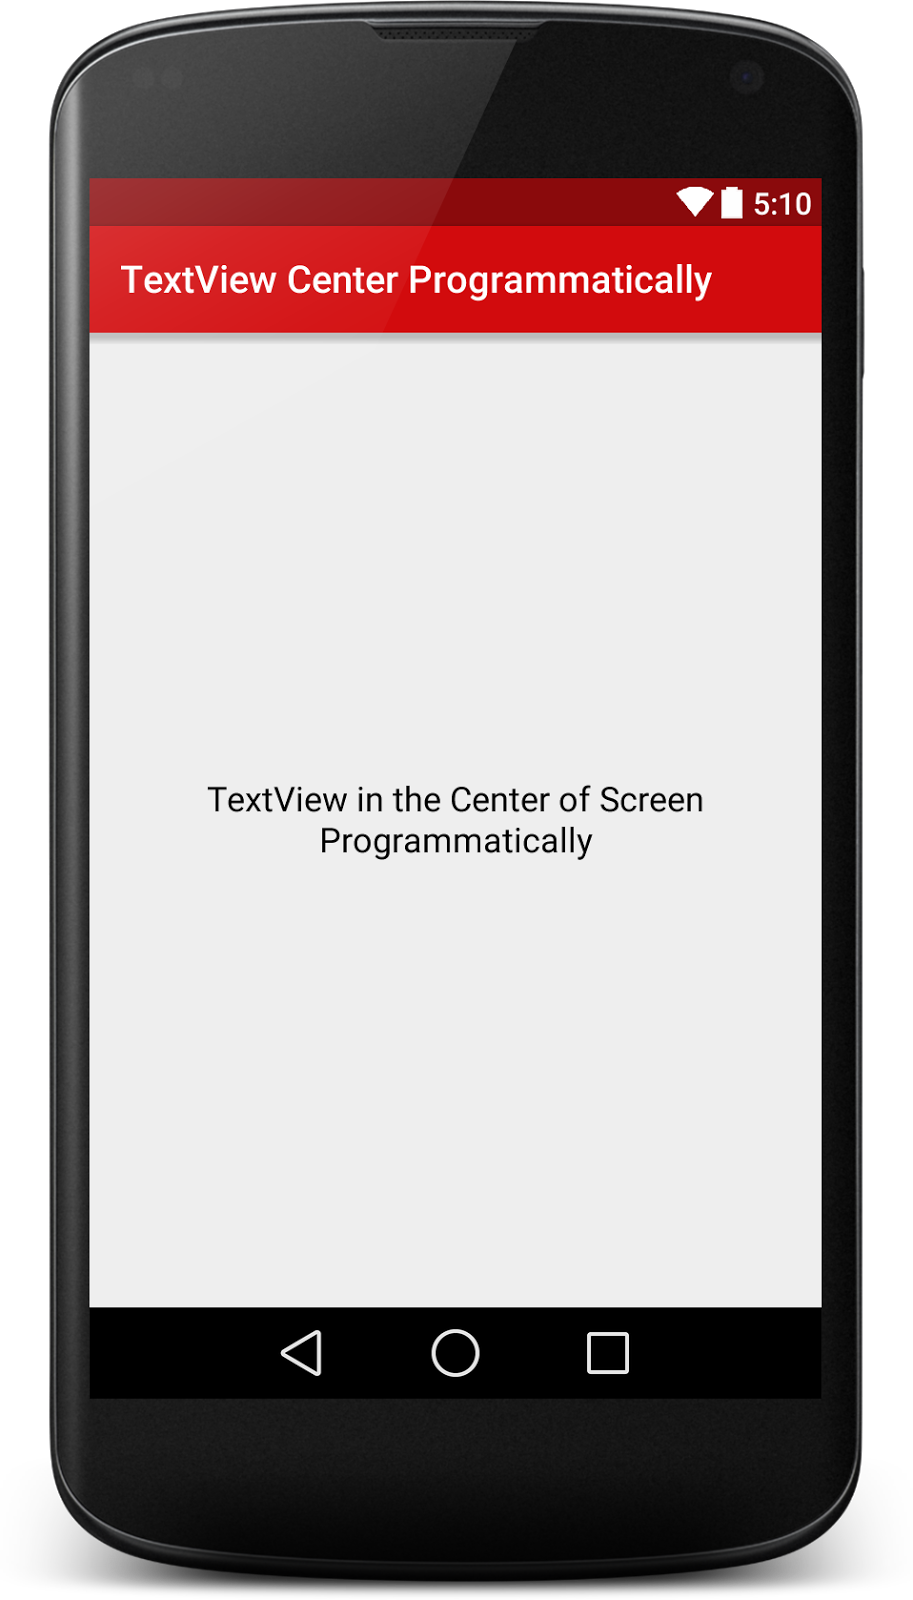 Programmatically Align Android TextView in the Center of the Screen